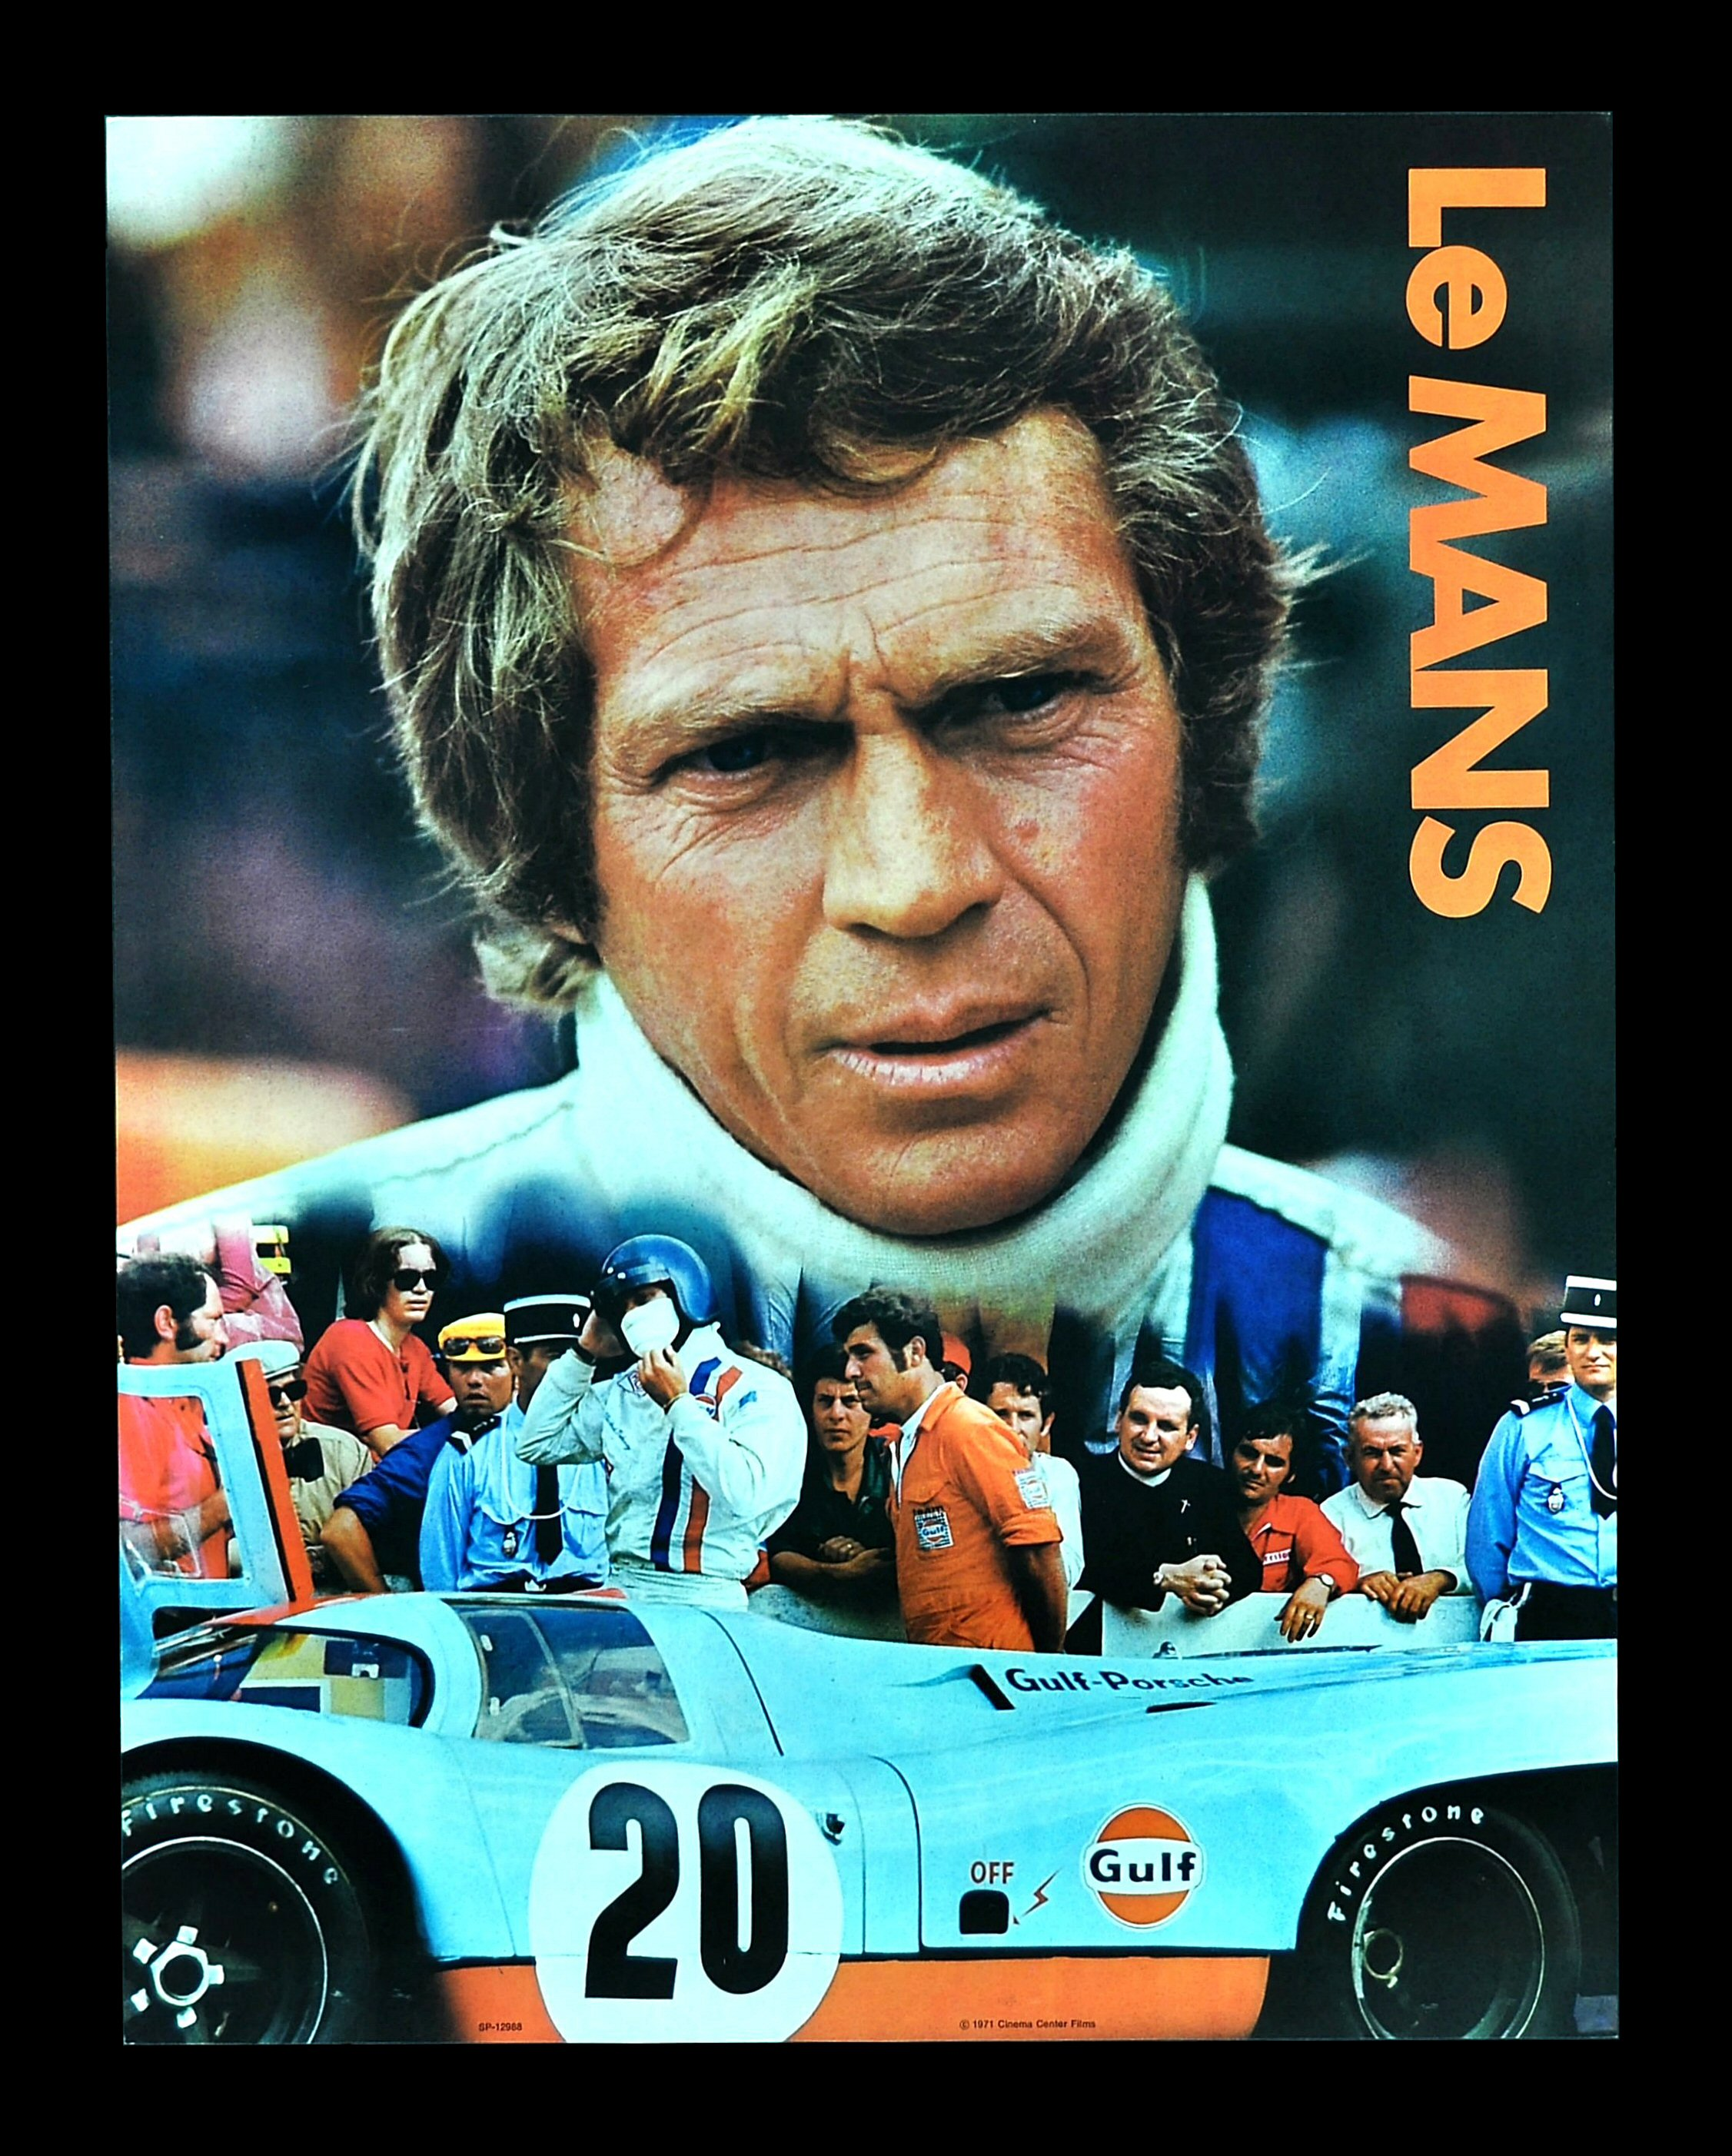 le mans lemans movie poster steve mcqueen auto racing. Black Bedroom Furniture Sets. Home Design Ideas